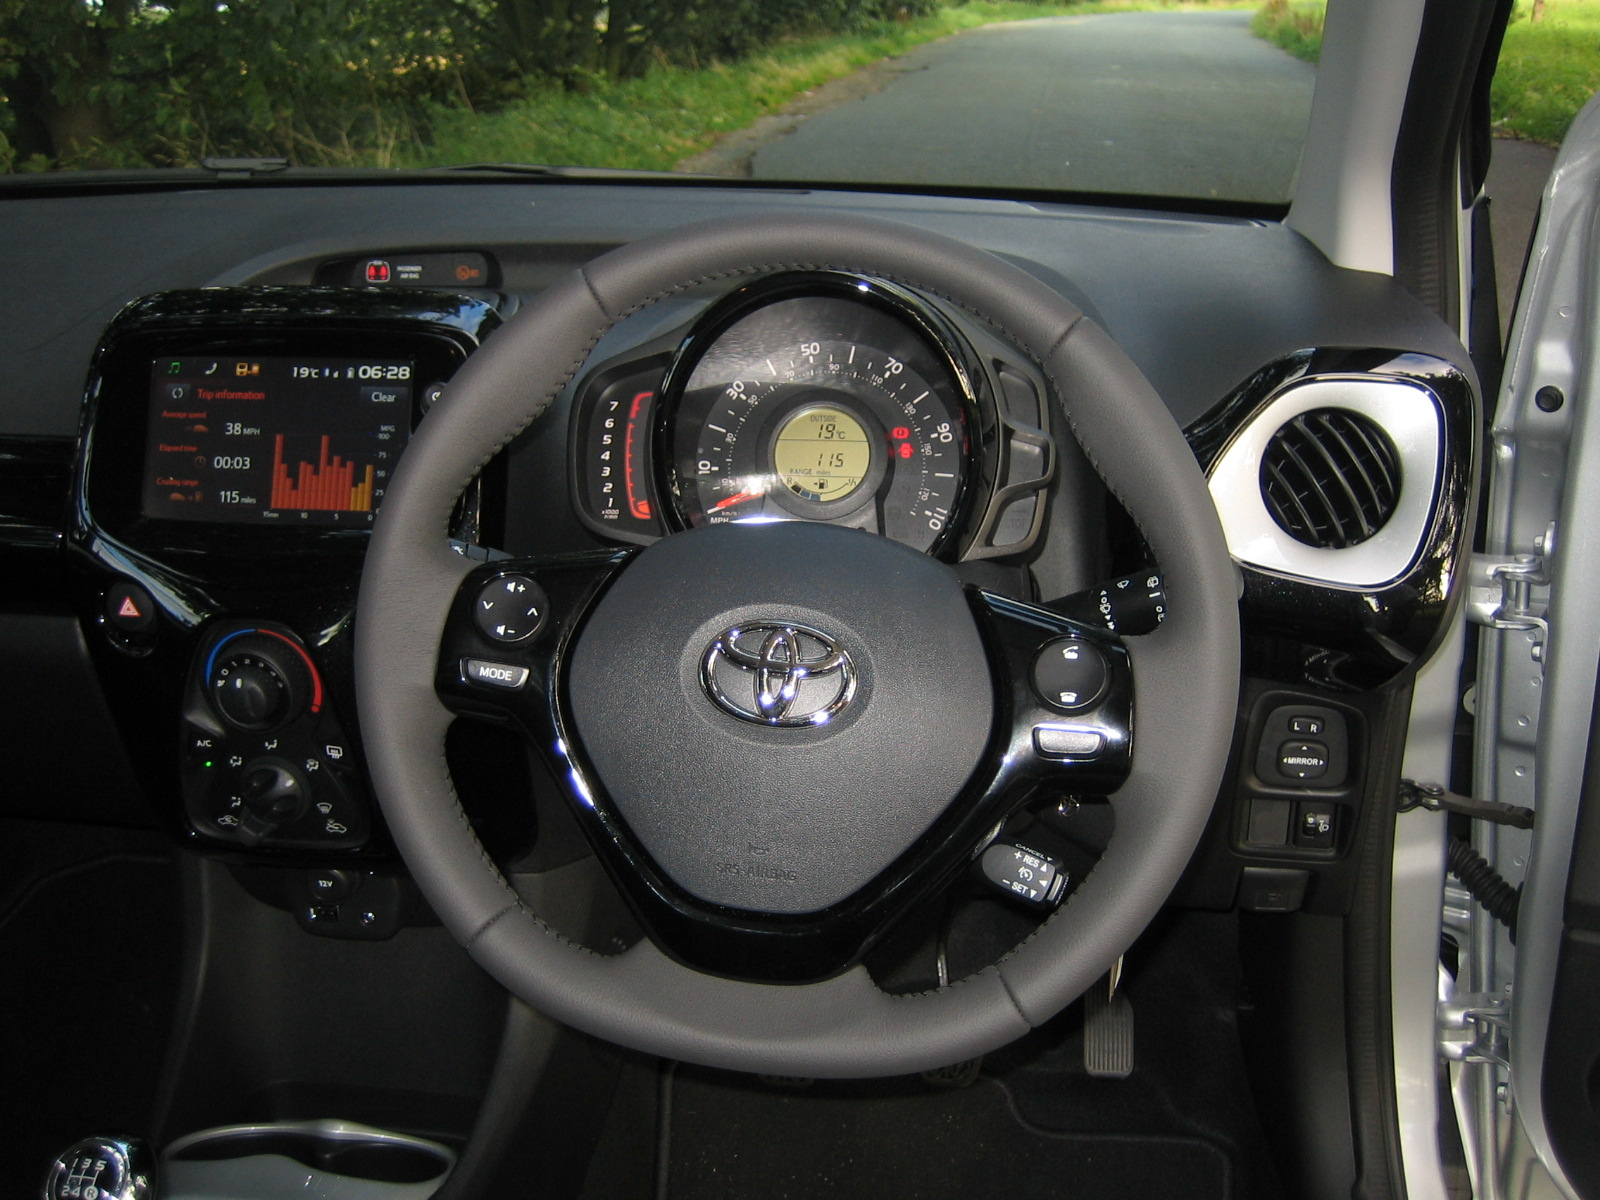 Toyota Aygo 1 0 Vvt X Cite Road Test Report And Review on touch screen car radio in